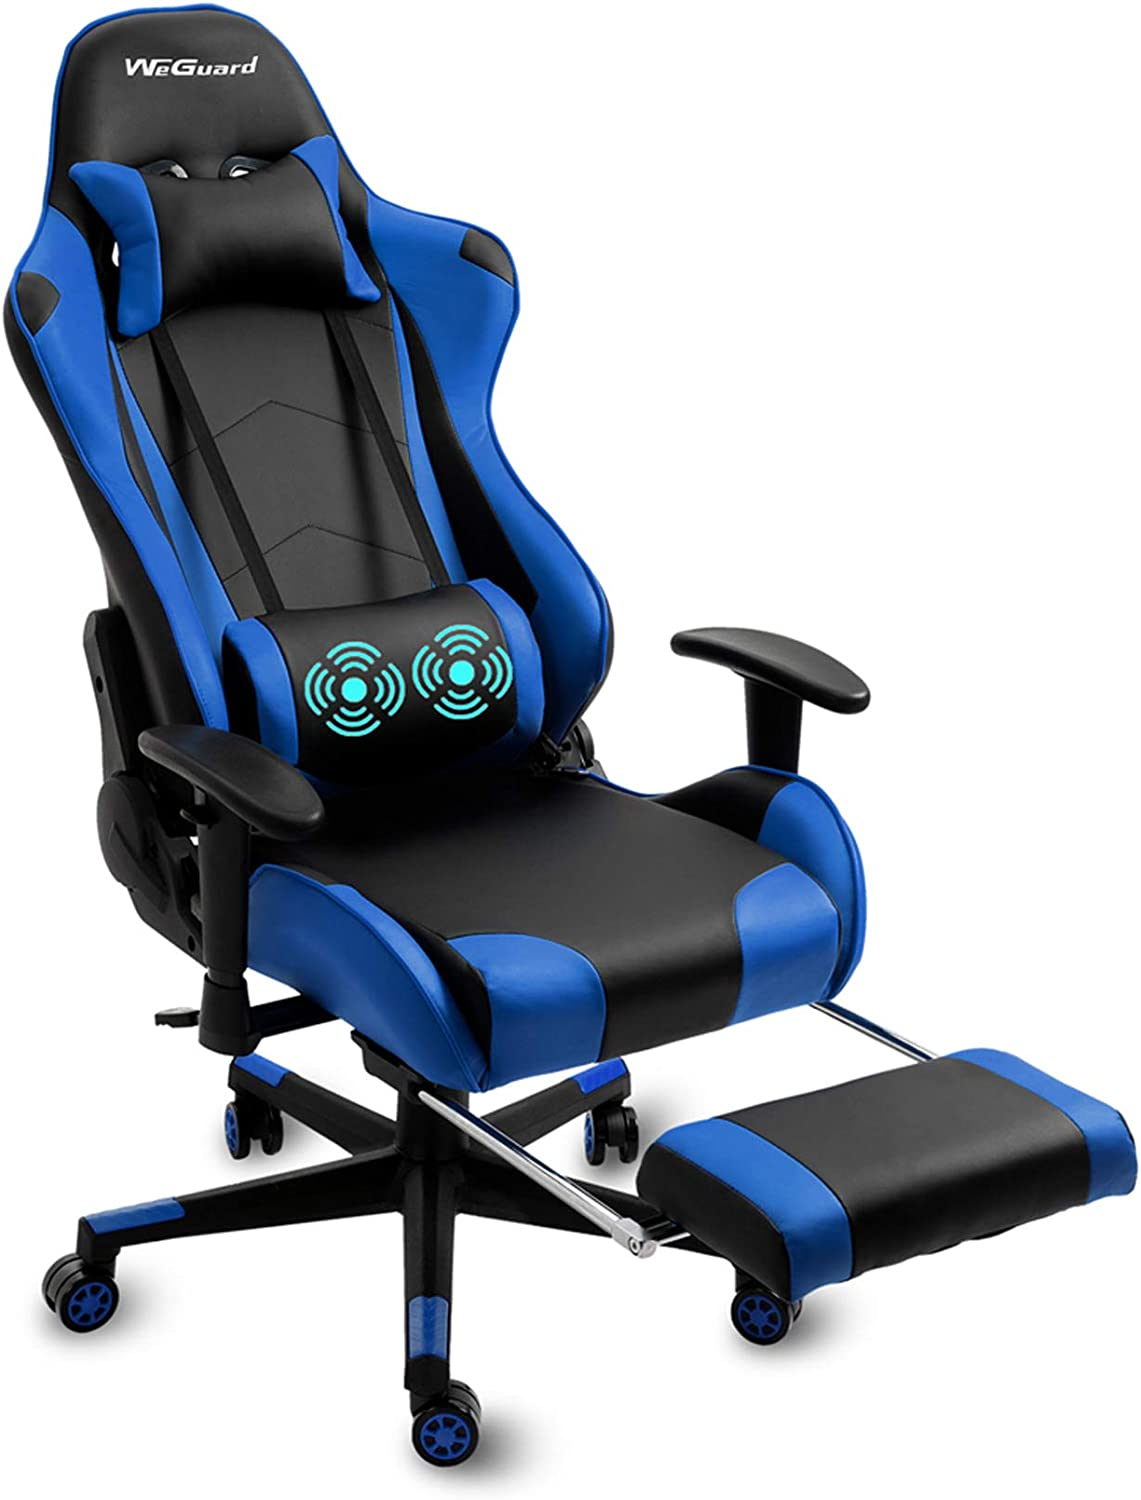 Amazon Com Weguard Massage Gaming Chair Racing Office Computer Game Chair Swivel Ergonomic Executive Pu Leather Chair With Adjustable Headrest And Lumbar And Support Retractable Footrest Blue Kitchen Dining